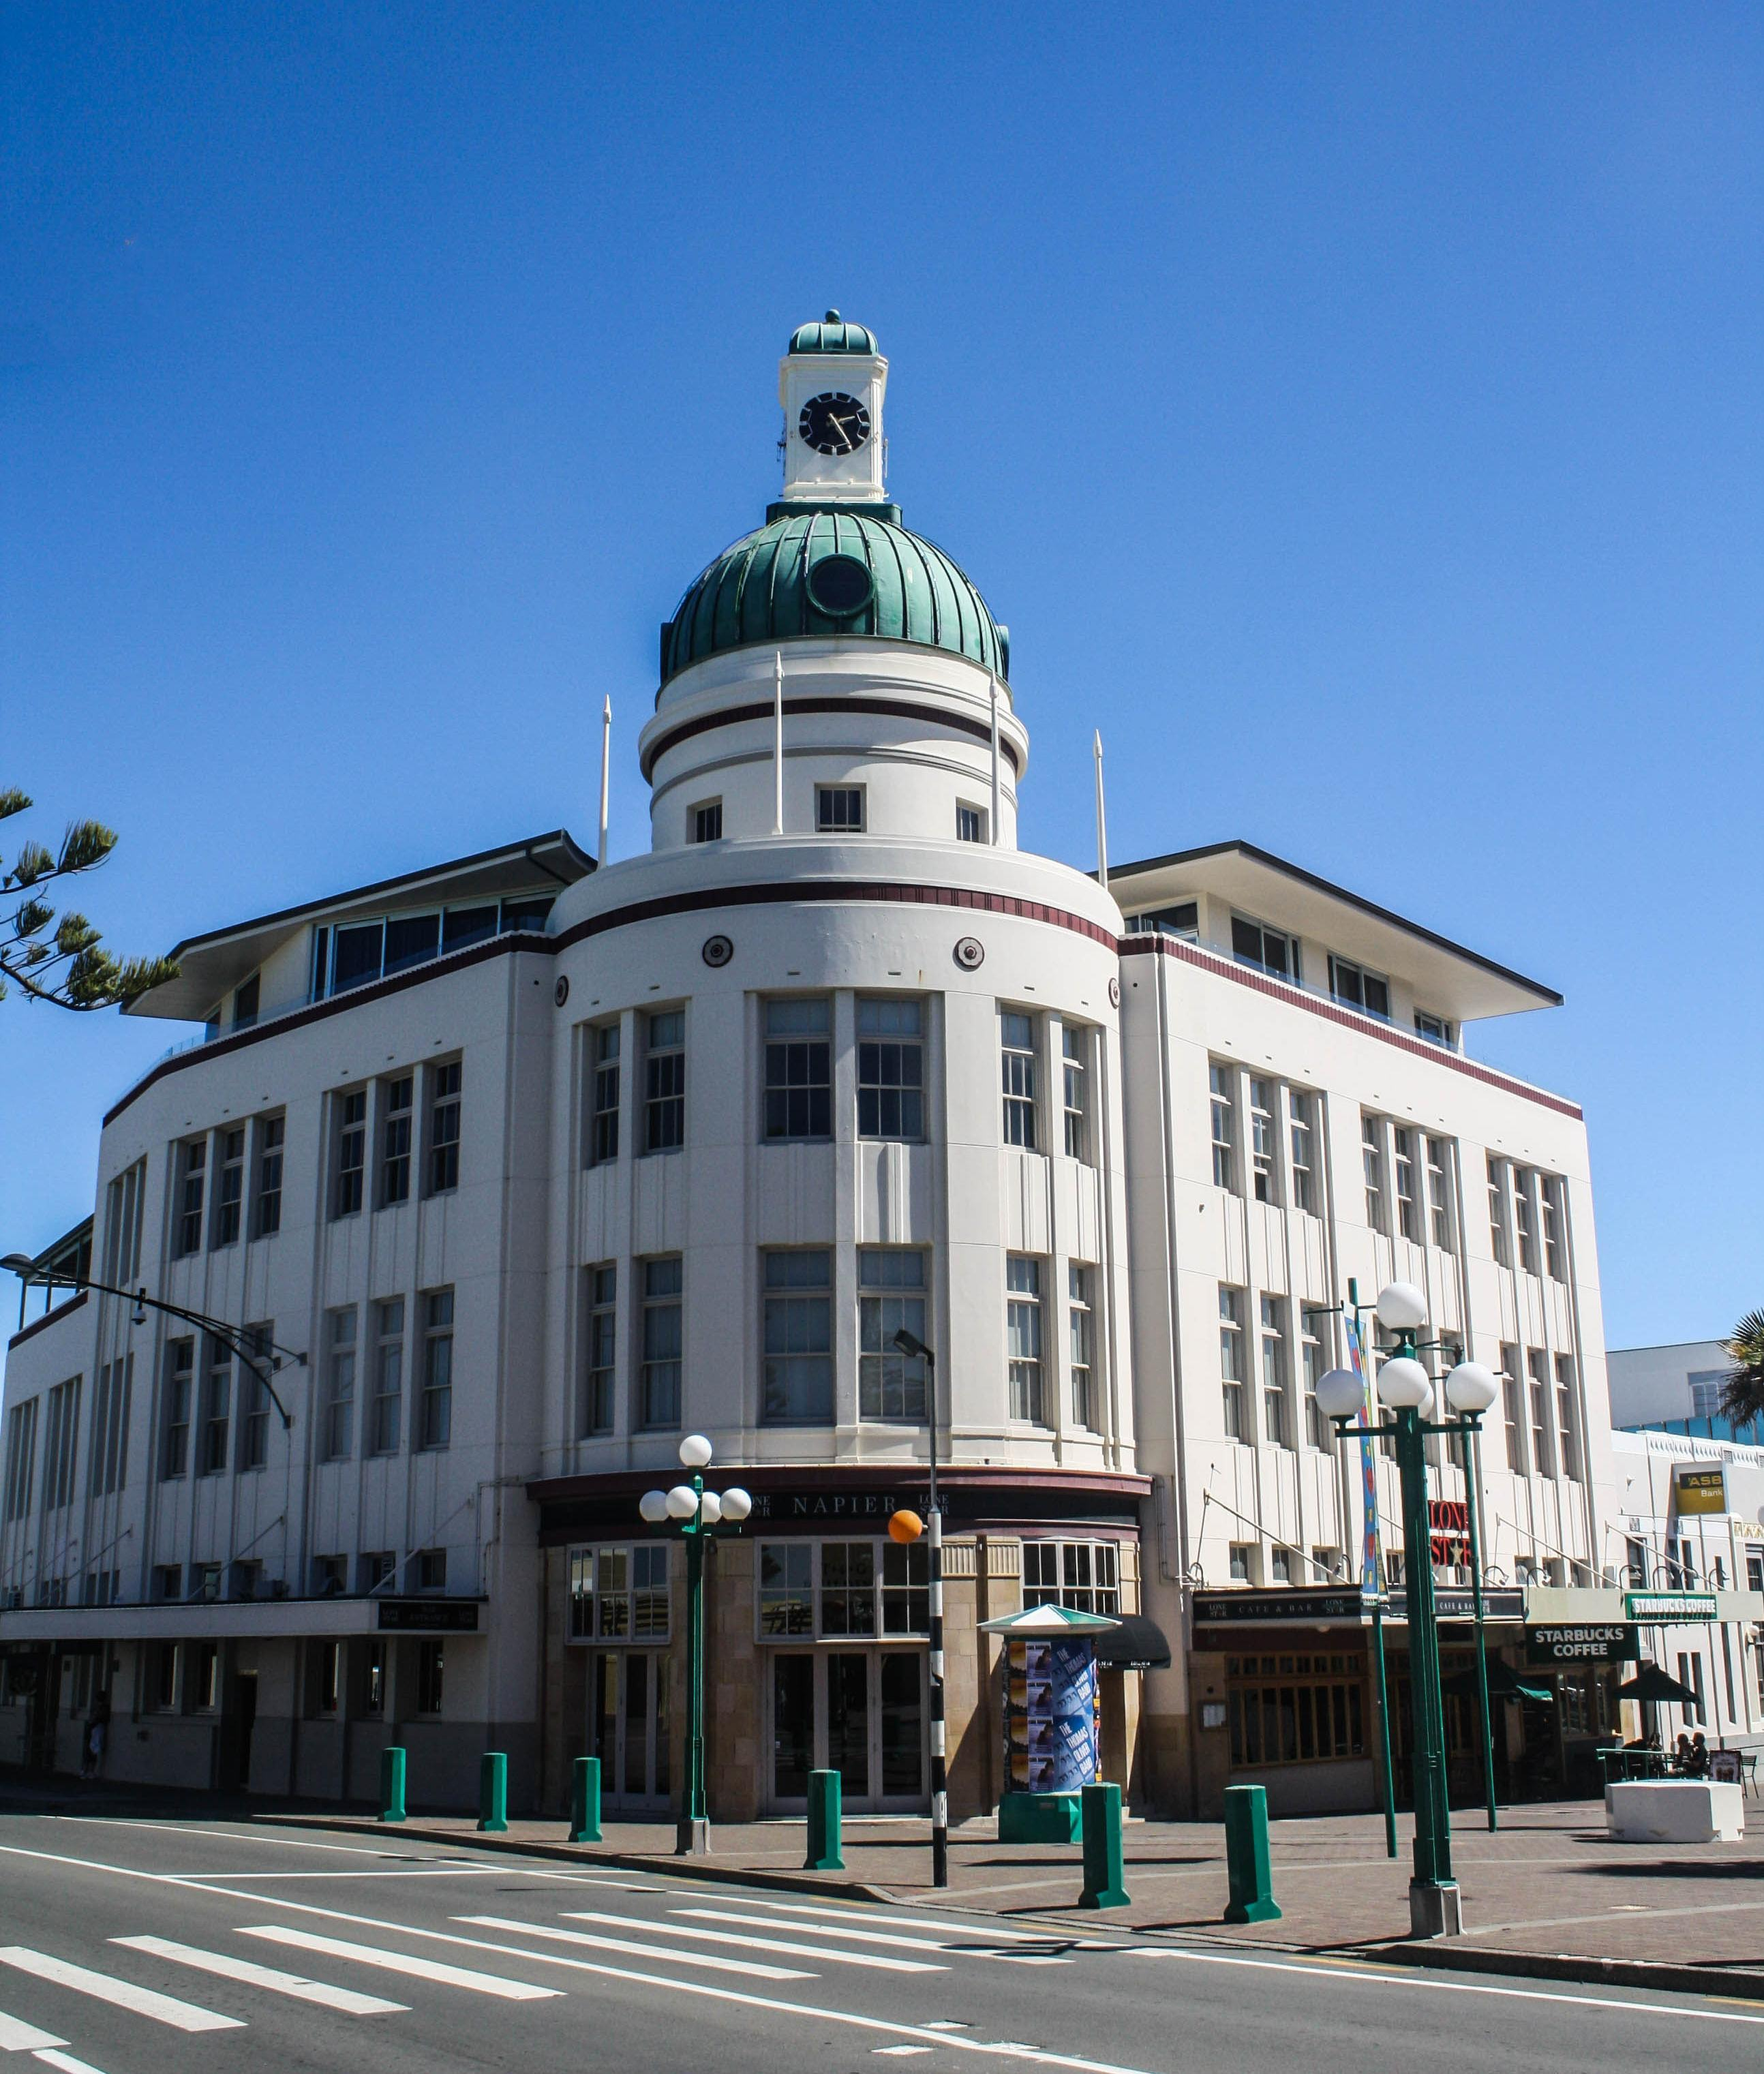 top 5 buildings in napier new zealand stephen travels